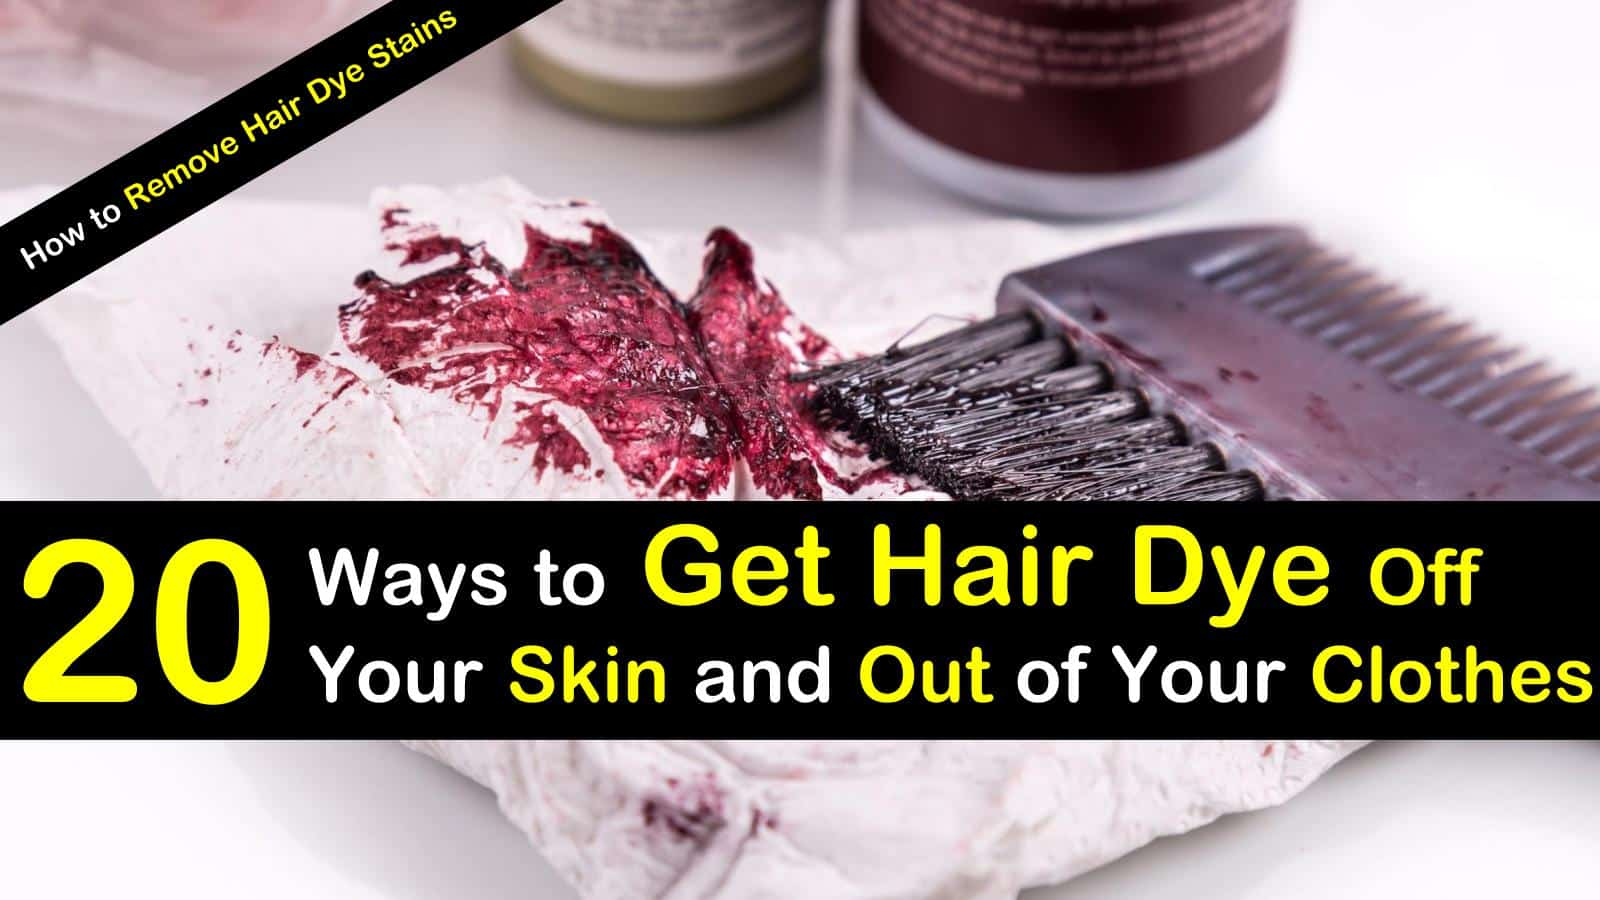 get hair dye off skin and clothes titleimg1